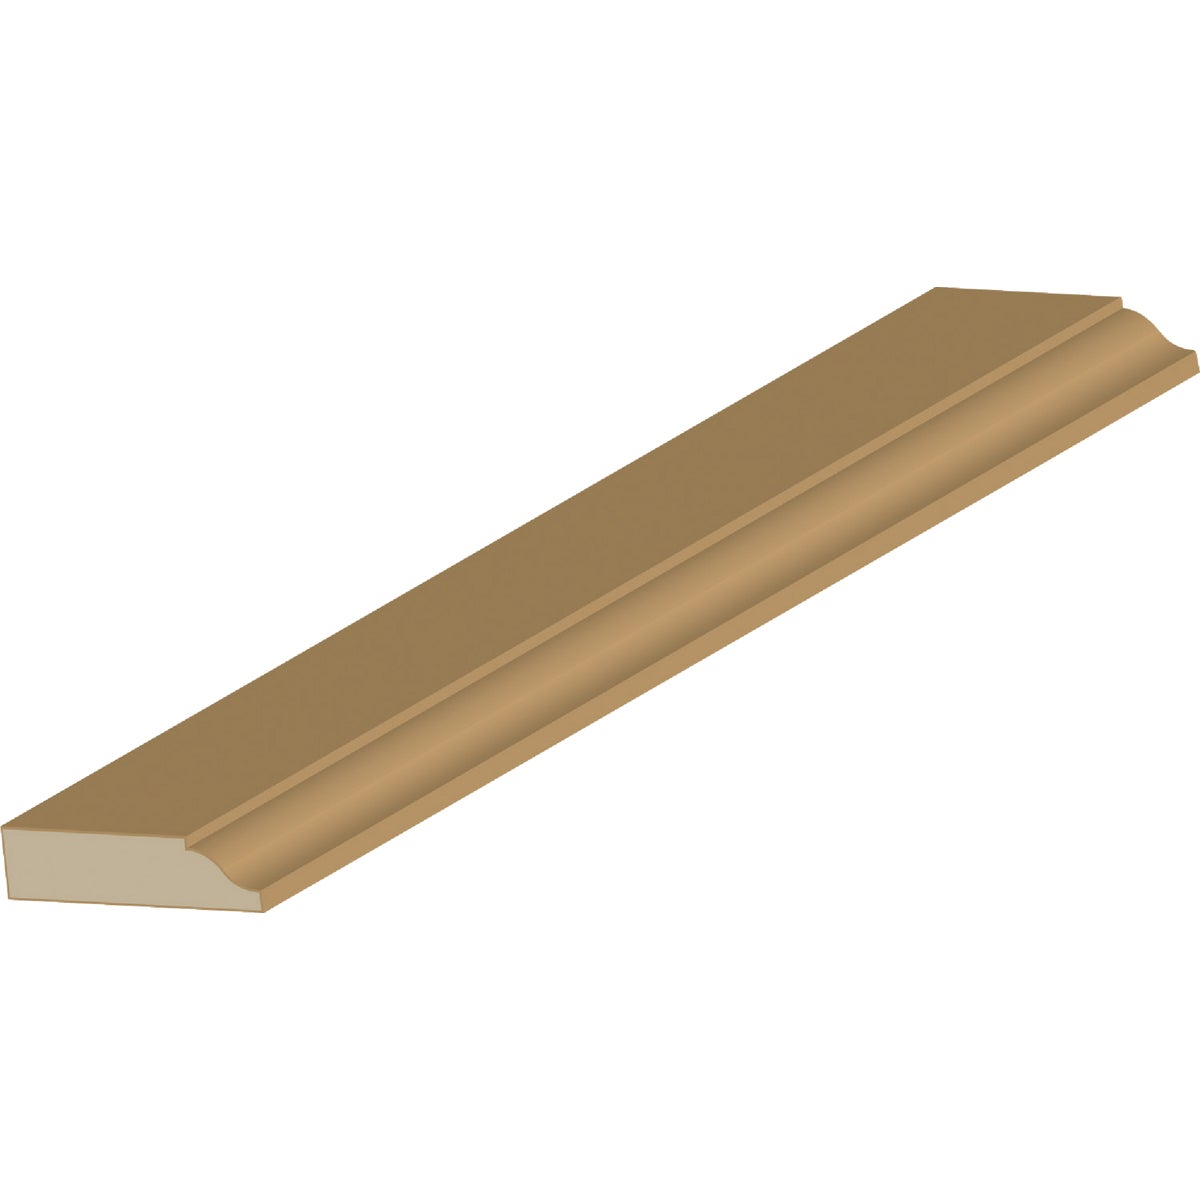 WM947 7' COL DOOR STOP - 94770FJPD by Jim White Millwork